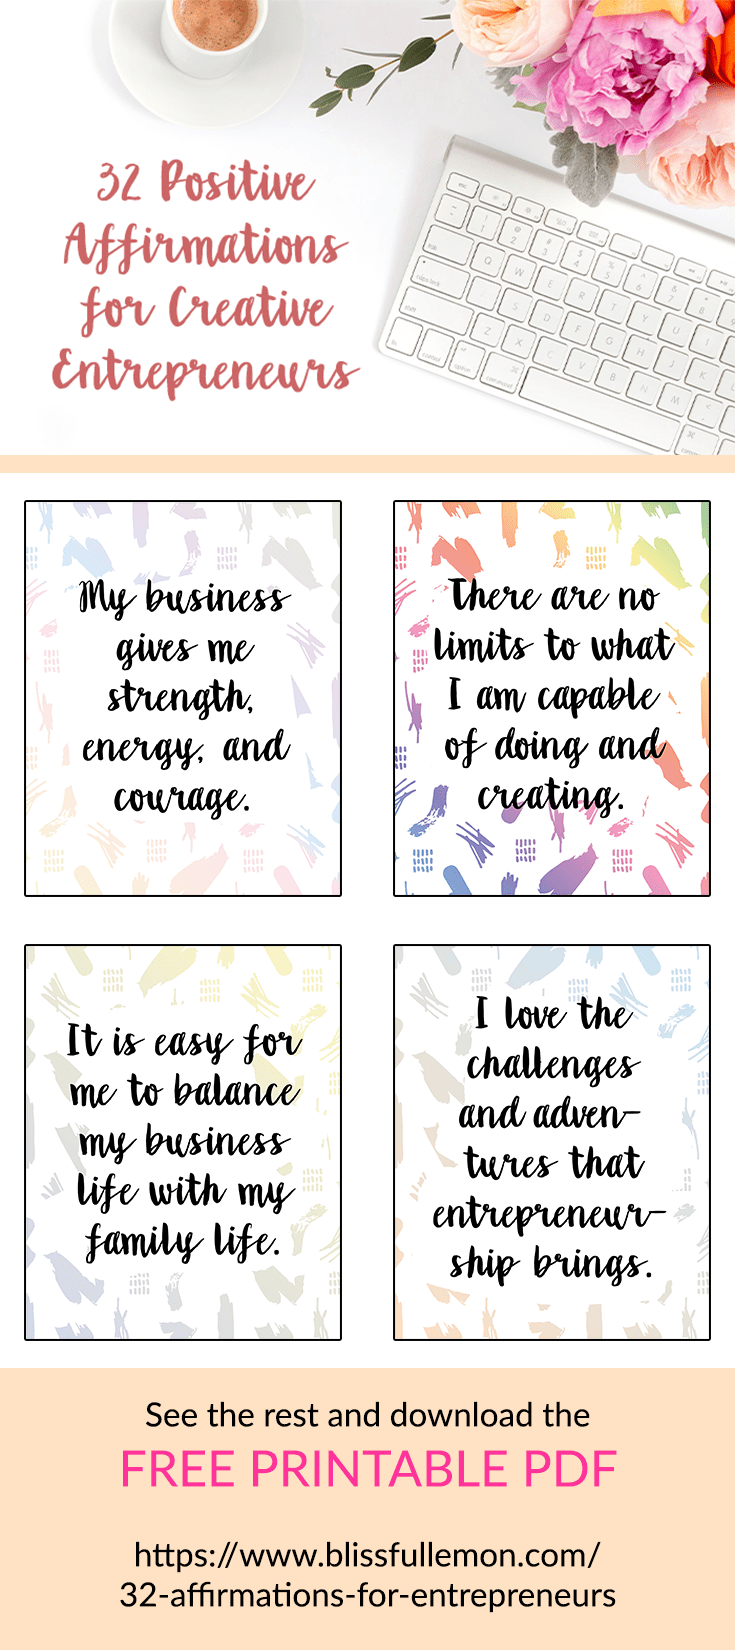 Running a business is hard work and the challenges can sometimes feel overwhelming. These positive affirmations are just what you need to get out of your slump and start making things happen in your business. Check out the post to download the images for free. You can put them on your wall, inside your favorite planner, or in a frame on your desk, so you can see them as often as possible. Read more at blissfullemon.com.